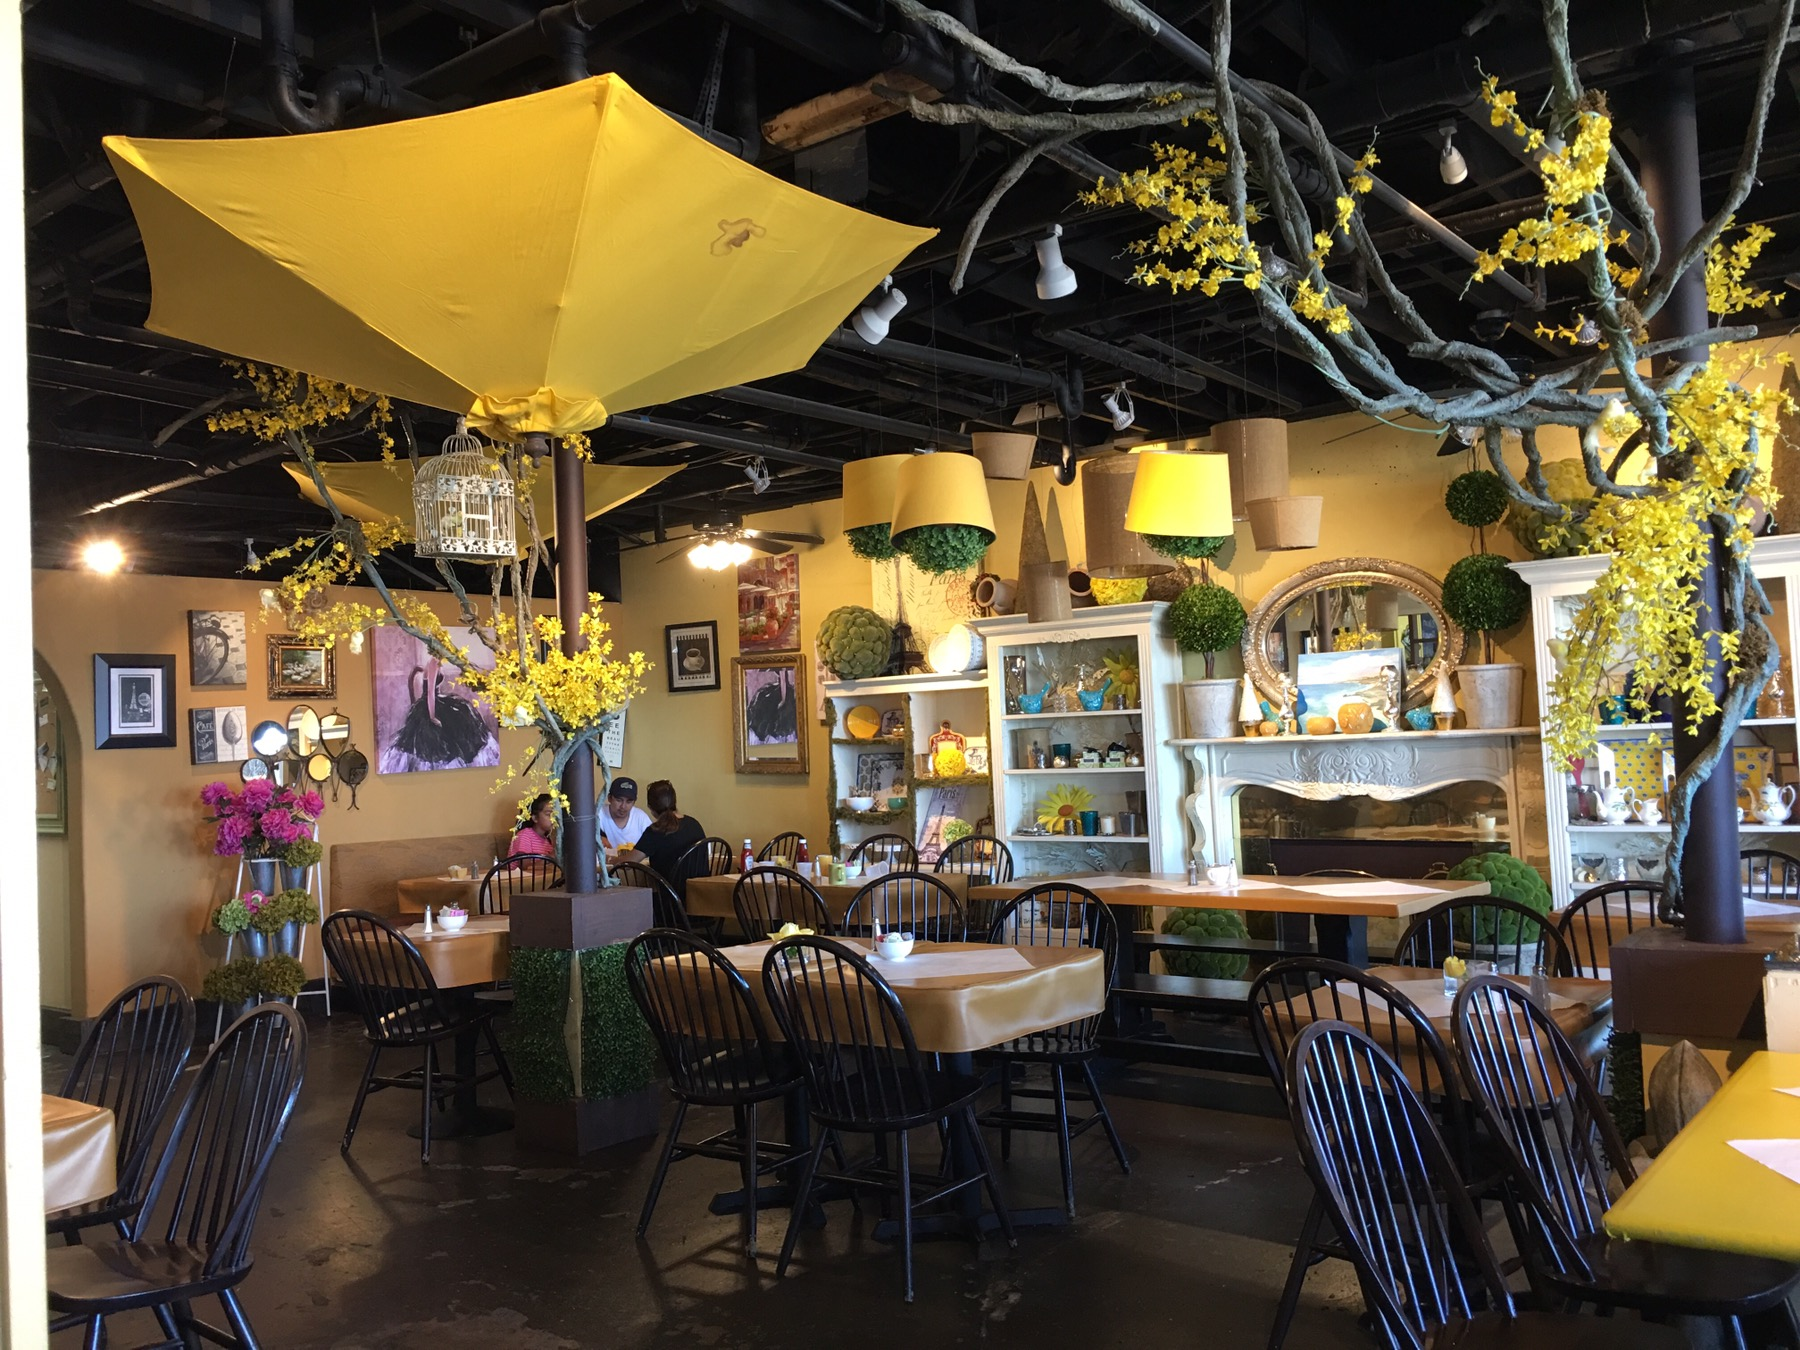 Palos verdes yellow vase you can call me mochelle the inside is yellow and cute plenty of seating inside and out if you like the ocean view dine al fresco you can even bring your dog reviewsmspy